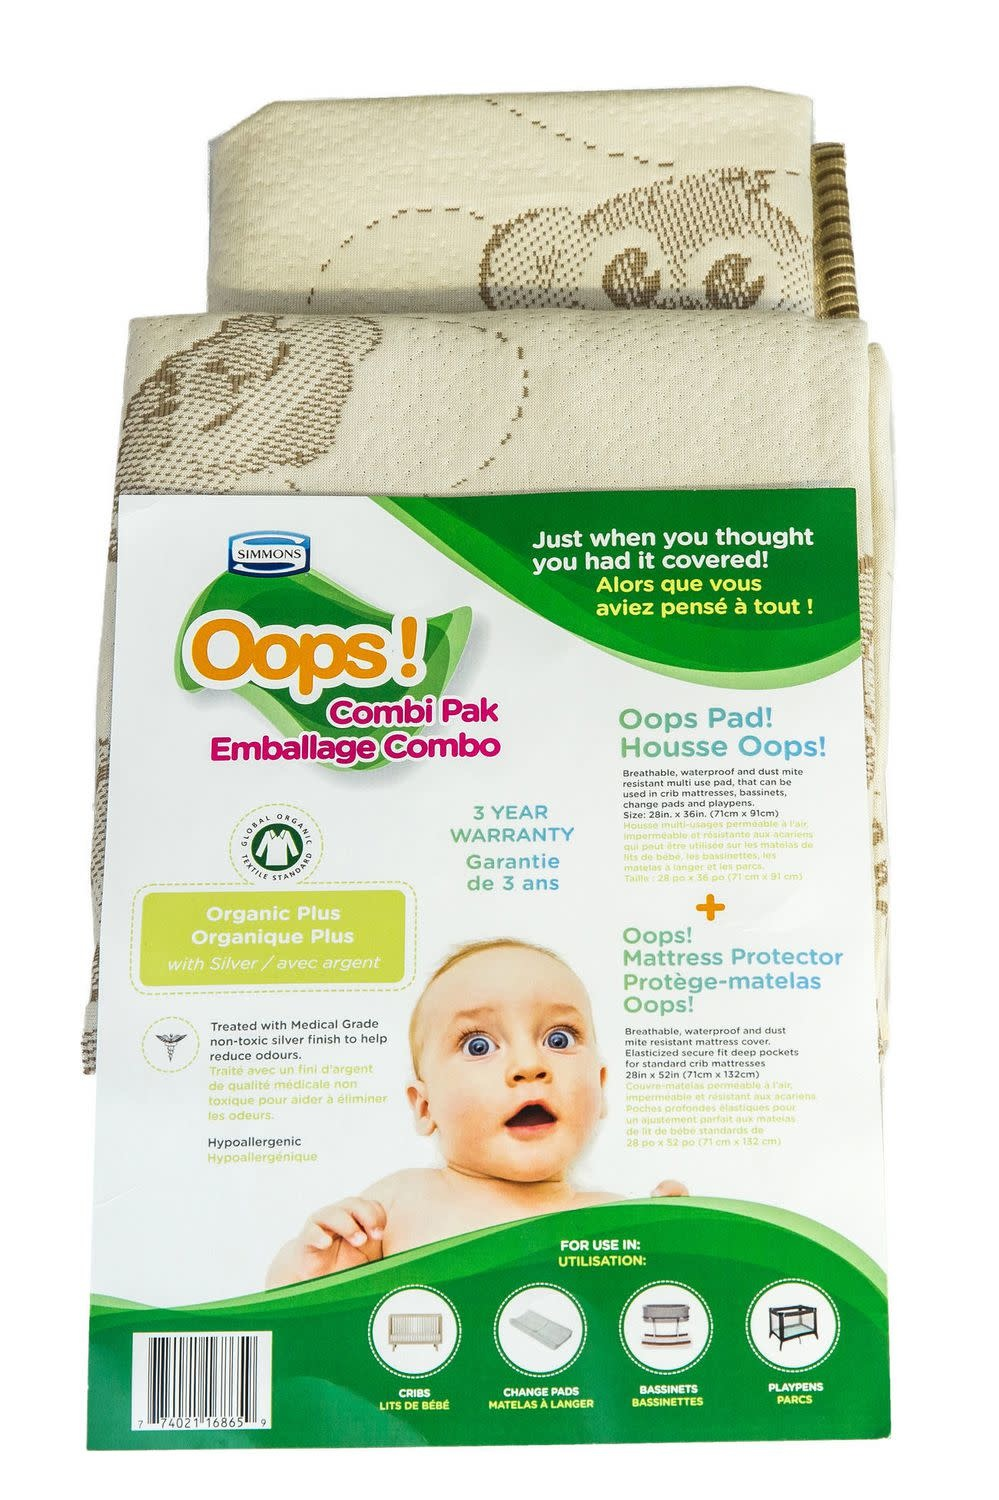 Simmons Simmons Oops Combi Pak - Organic Cover and Multi Use Pad